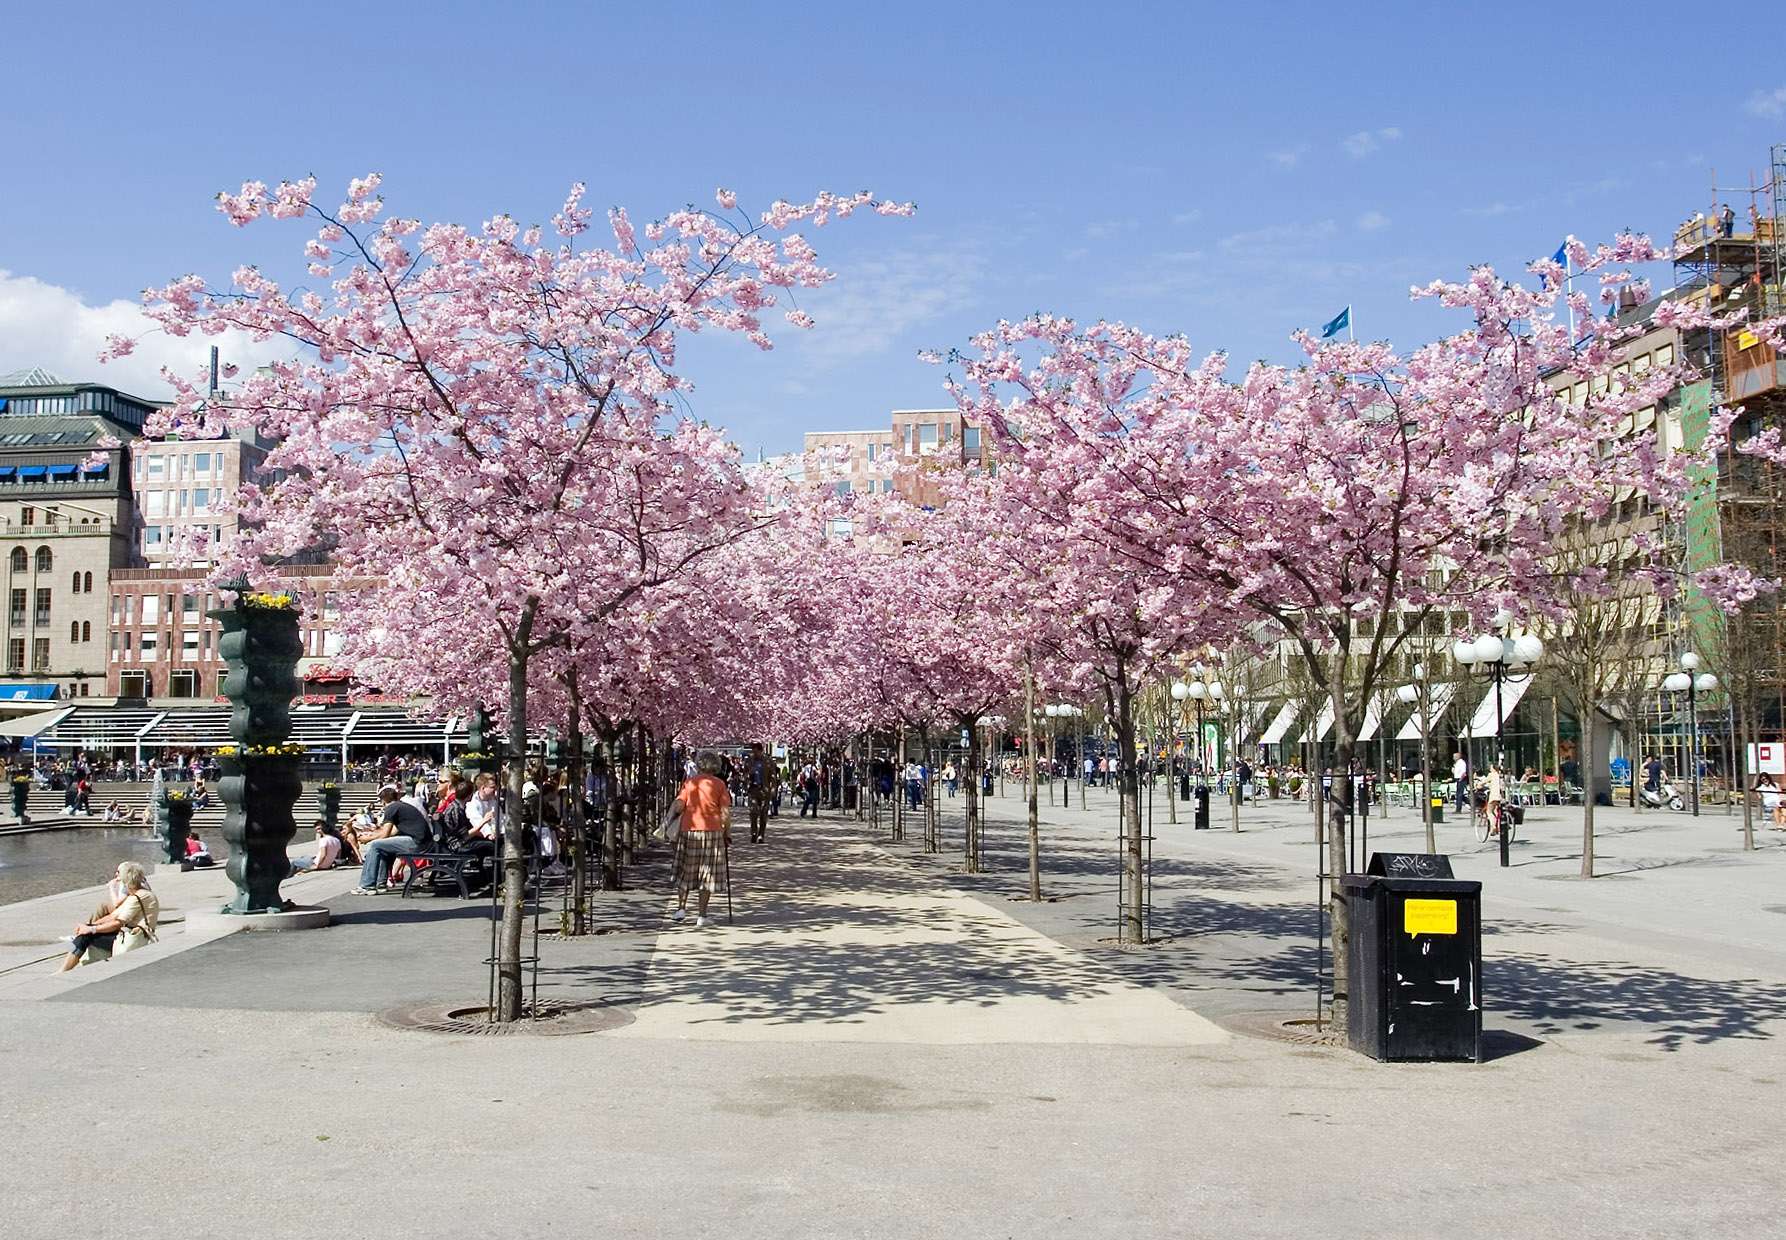 Spring_in_the_city_-_Stockholm,_Sweden_-_panoramio